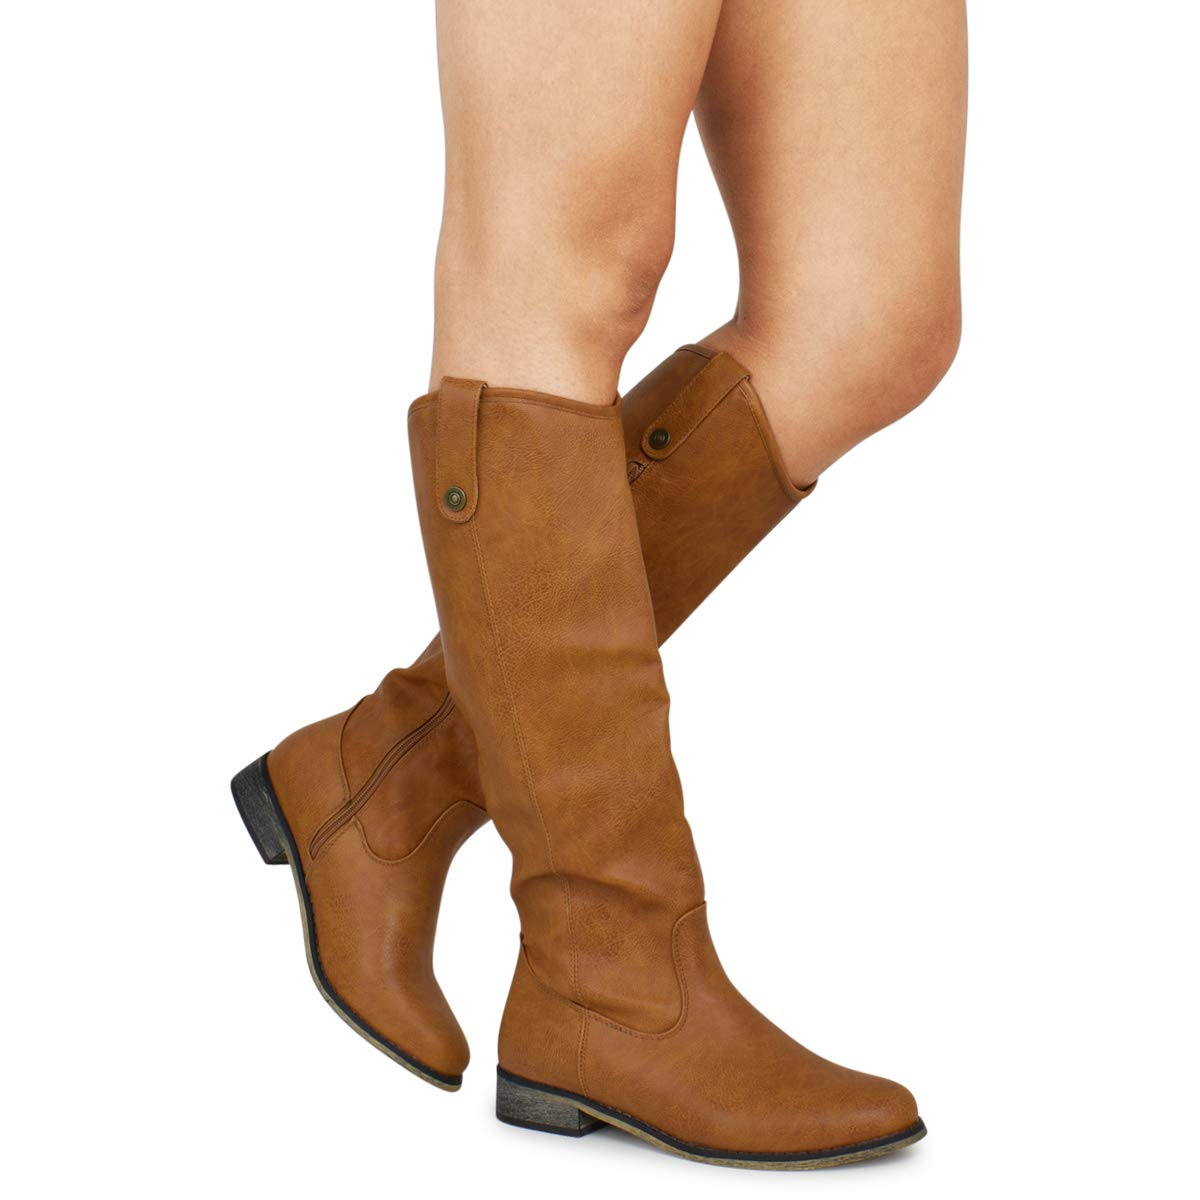 Premier Standard - Elastic Panel Knee High Boots - Low Heel Zipper Combat Stacked Heel Boots